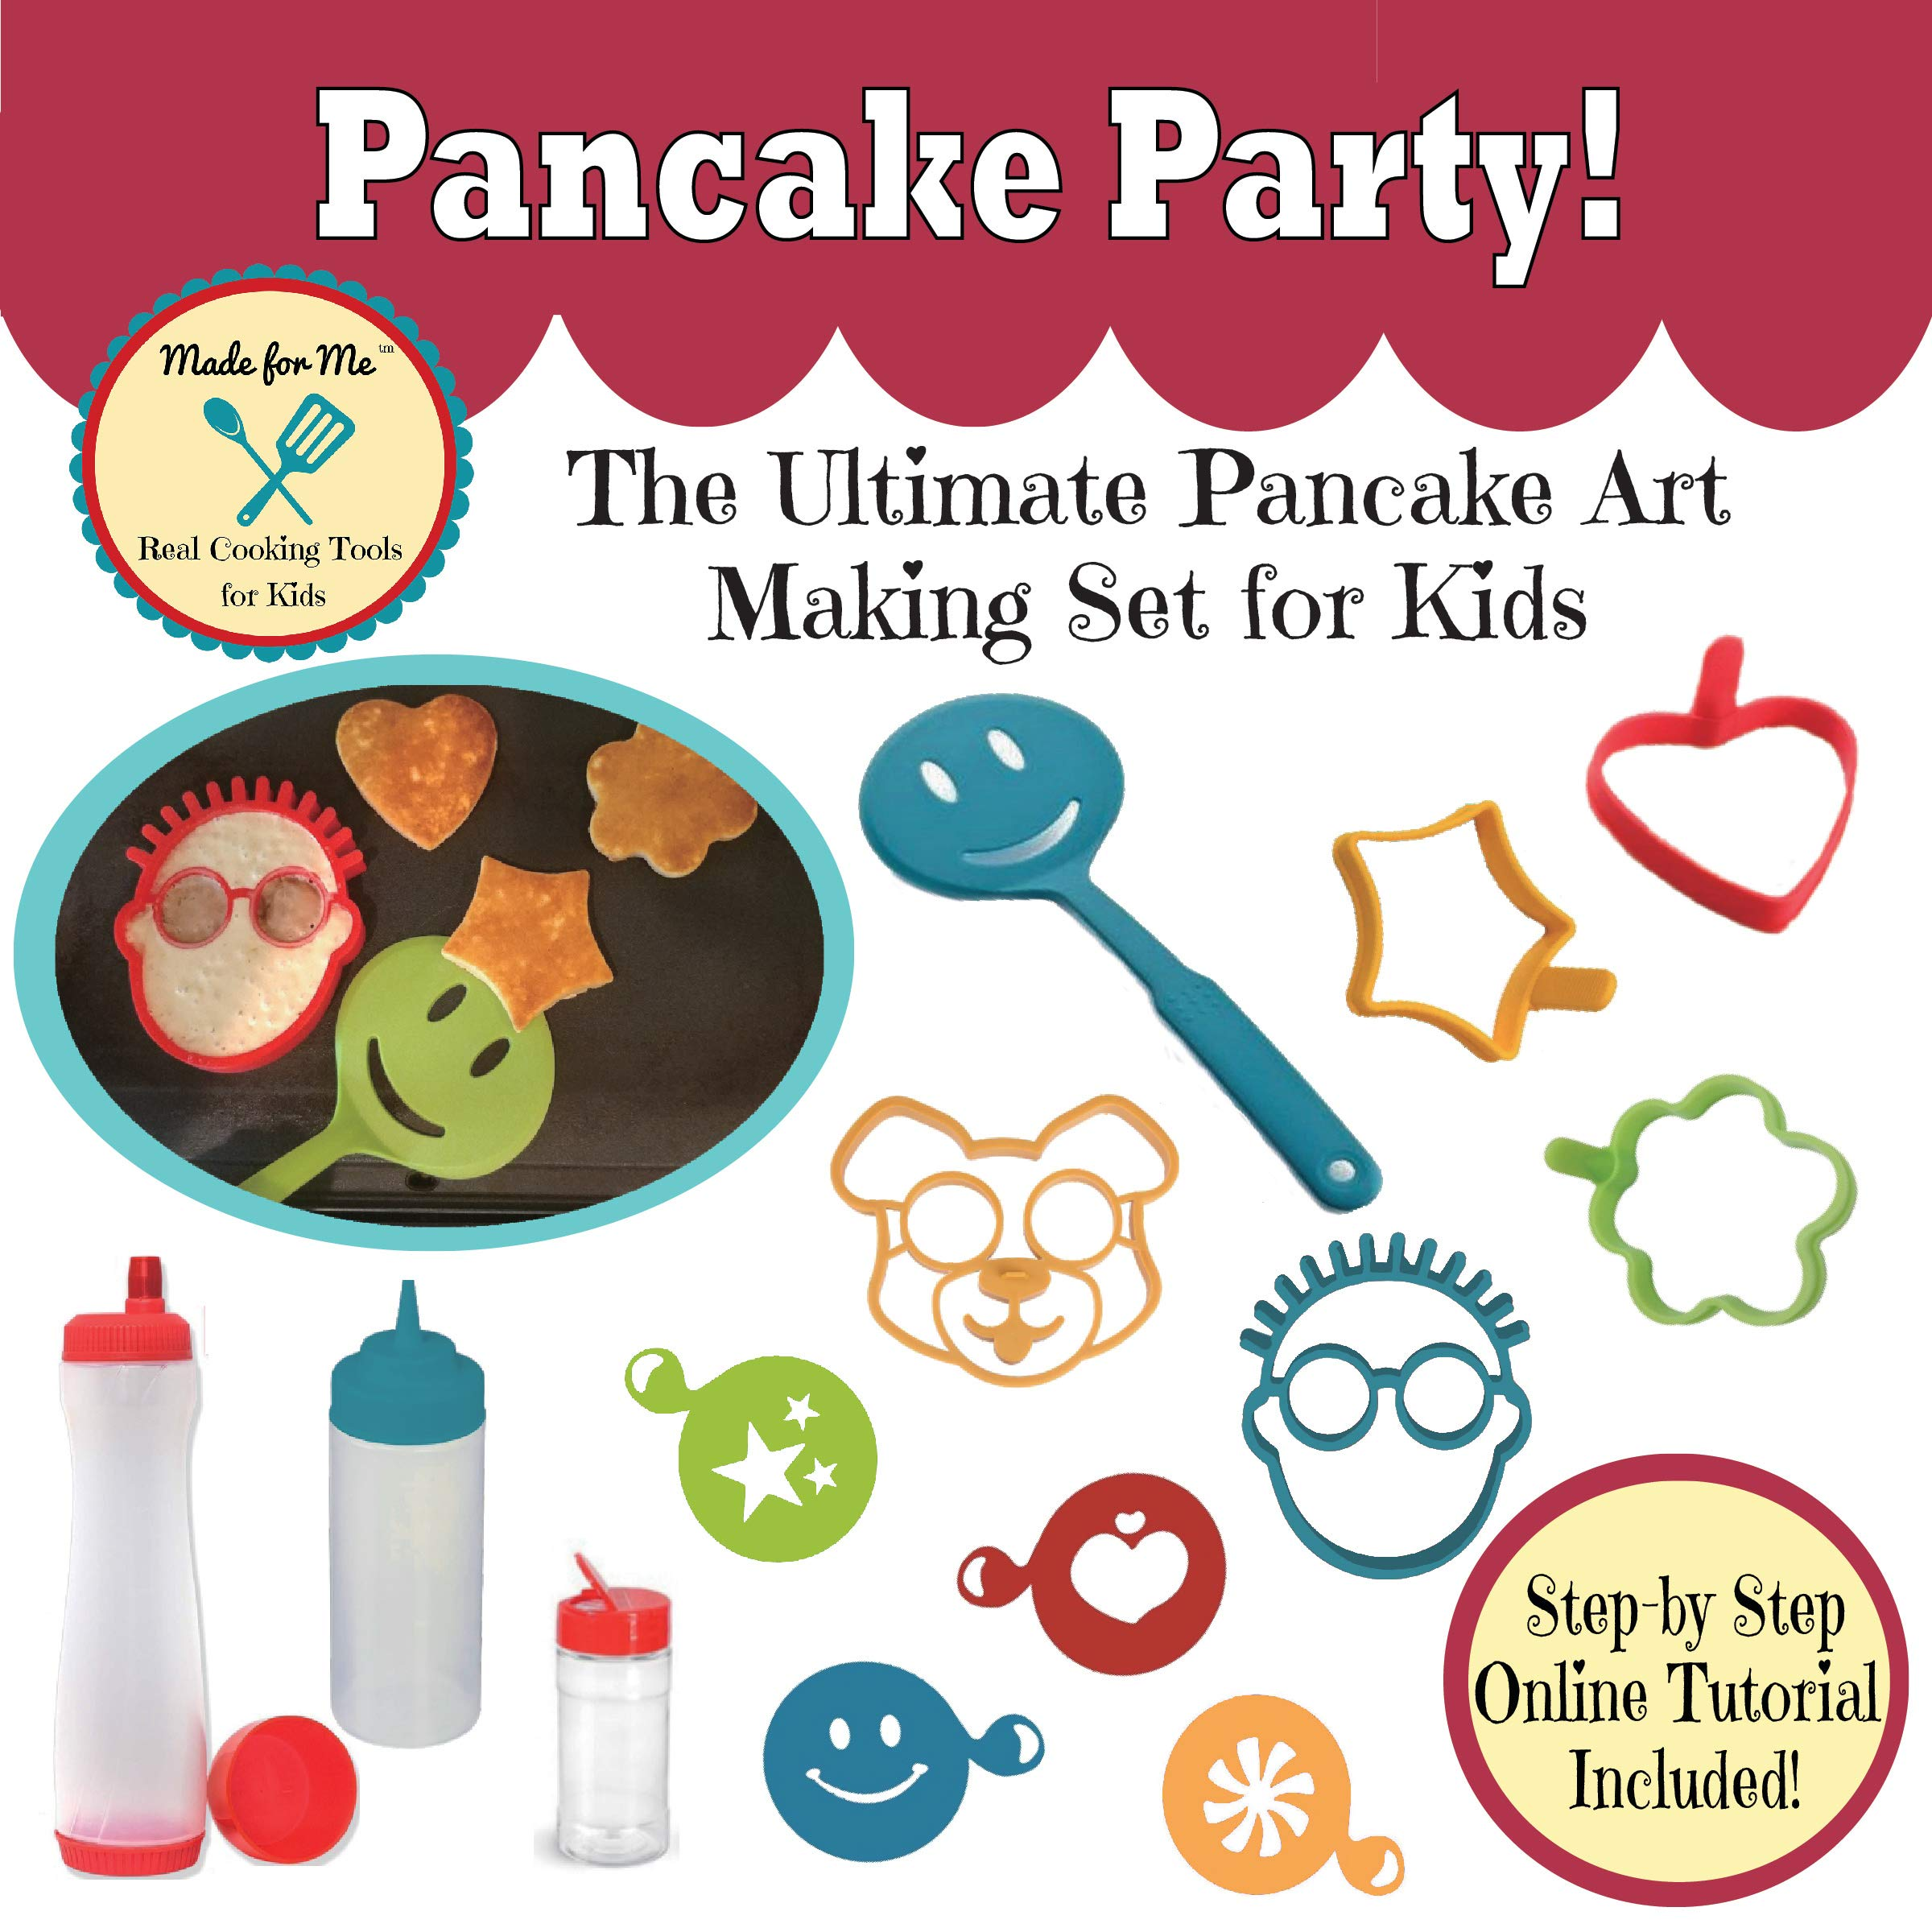 Pancake Party! The Ultimate Pancake Art Making Set for Kids - An excellent educational gift for children, young chefs, bakers! Great cooking, baking pancake making kit for boys and girls!